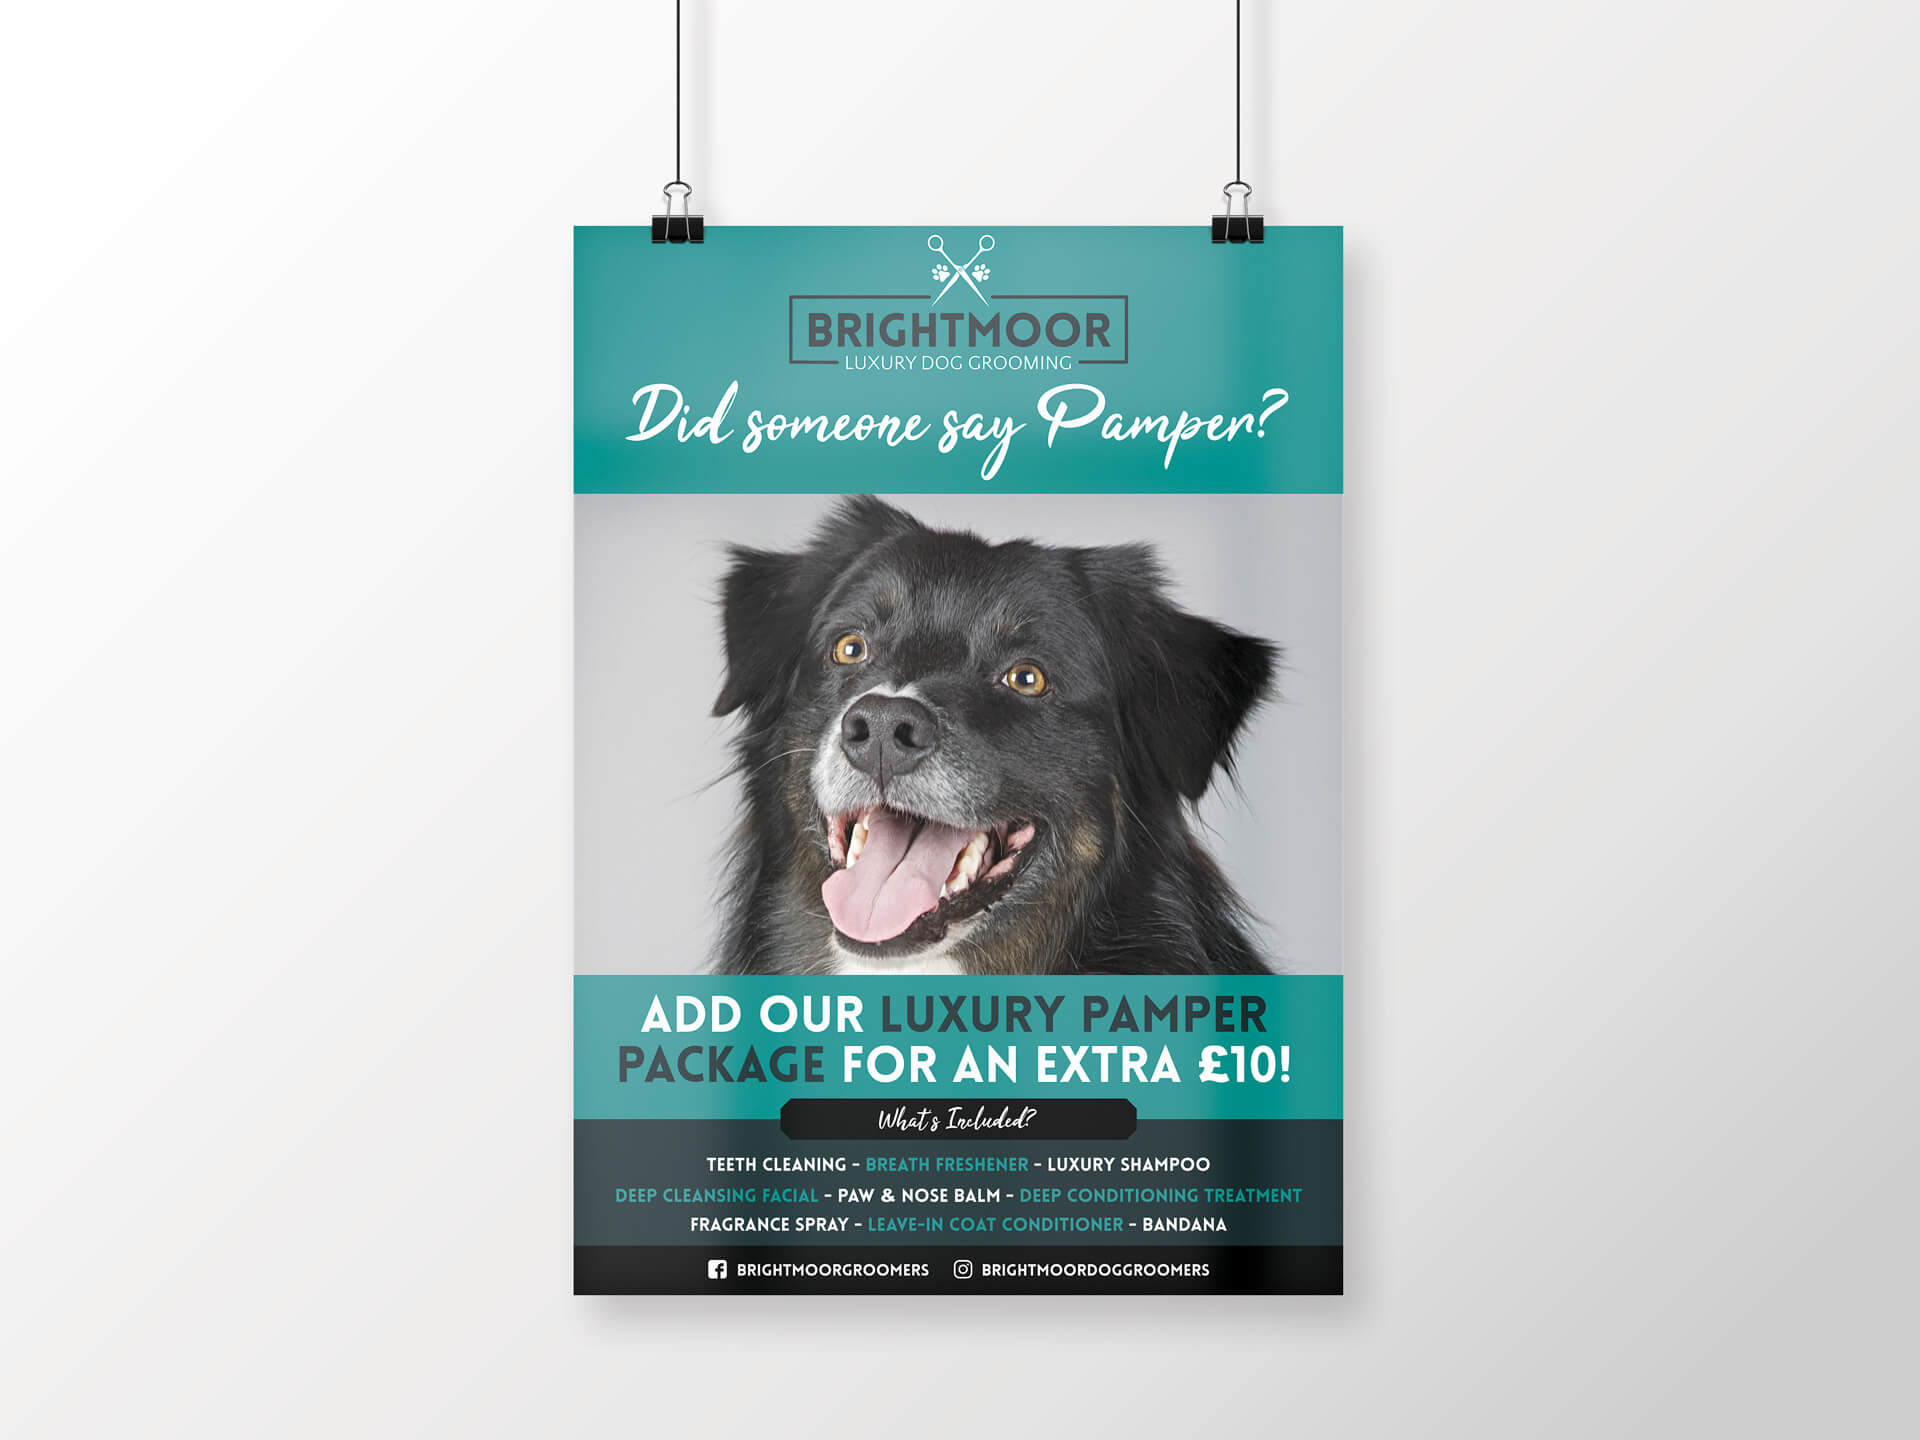 Brightmoor Luxury Dog Grooming A3 Poster